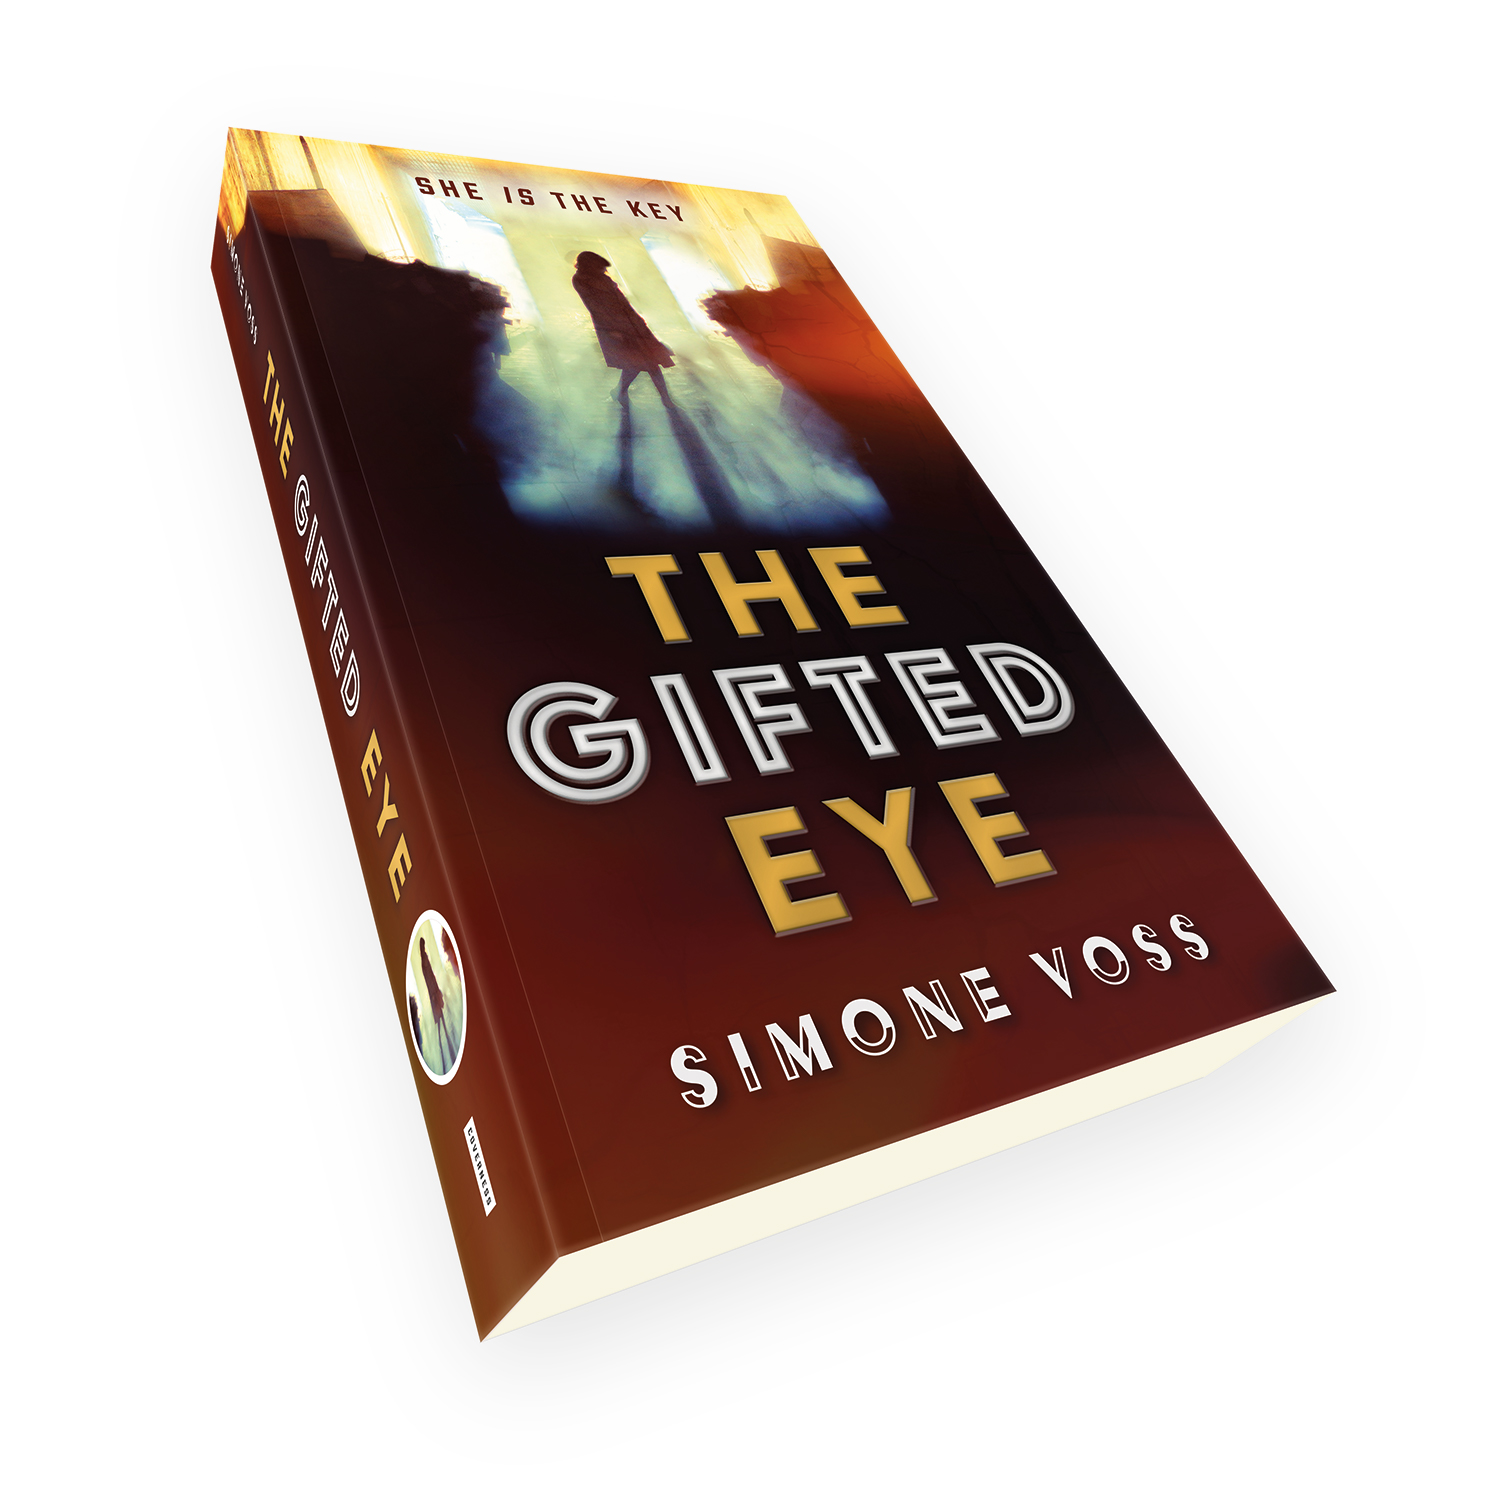 'The Gifted Eye' is a bespoke cover design for a modern paranormal thriller novel. The book cover was designed by Mark Thomas, of coverness.com. To find out more about my book design services, please visit www.coverness.com.